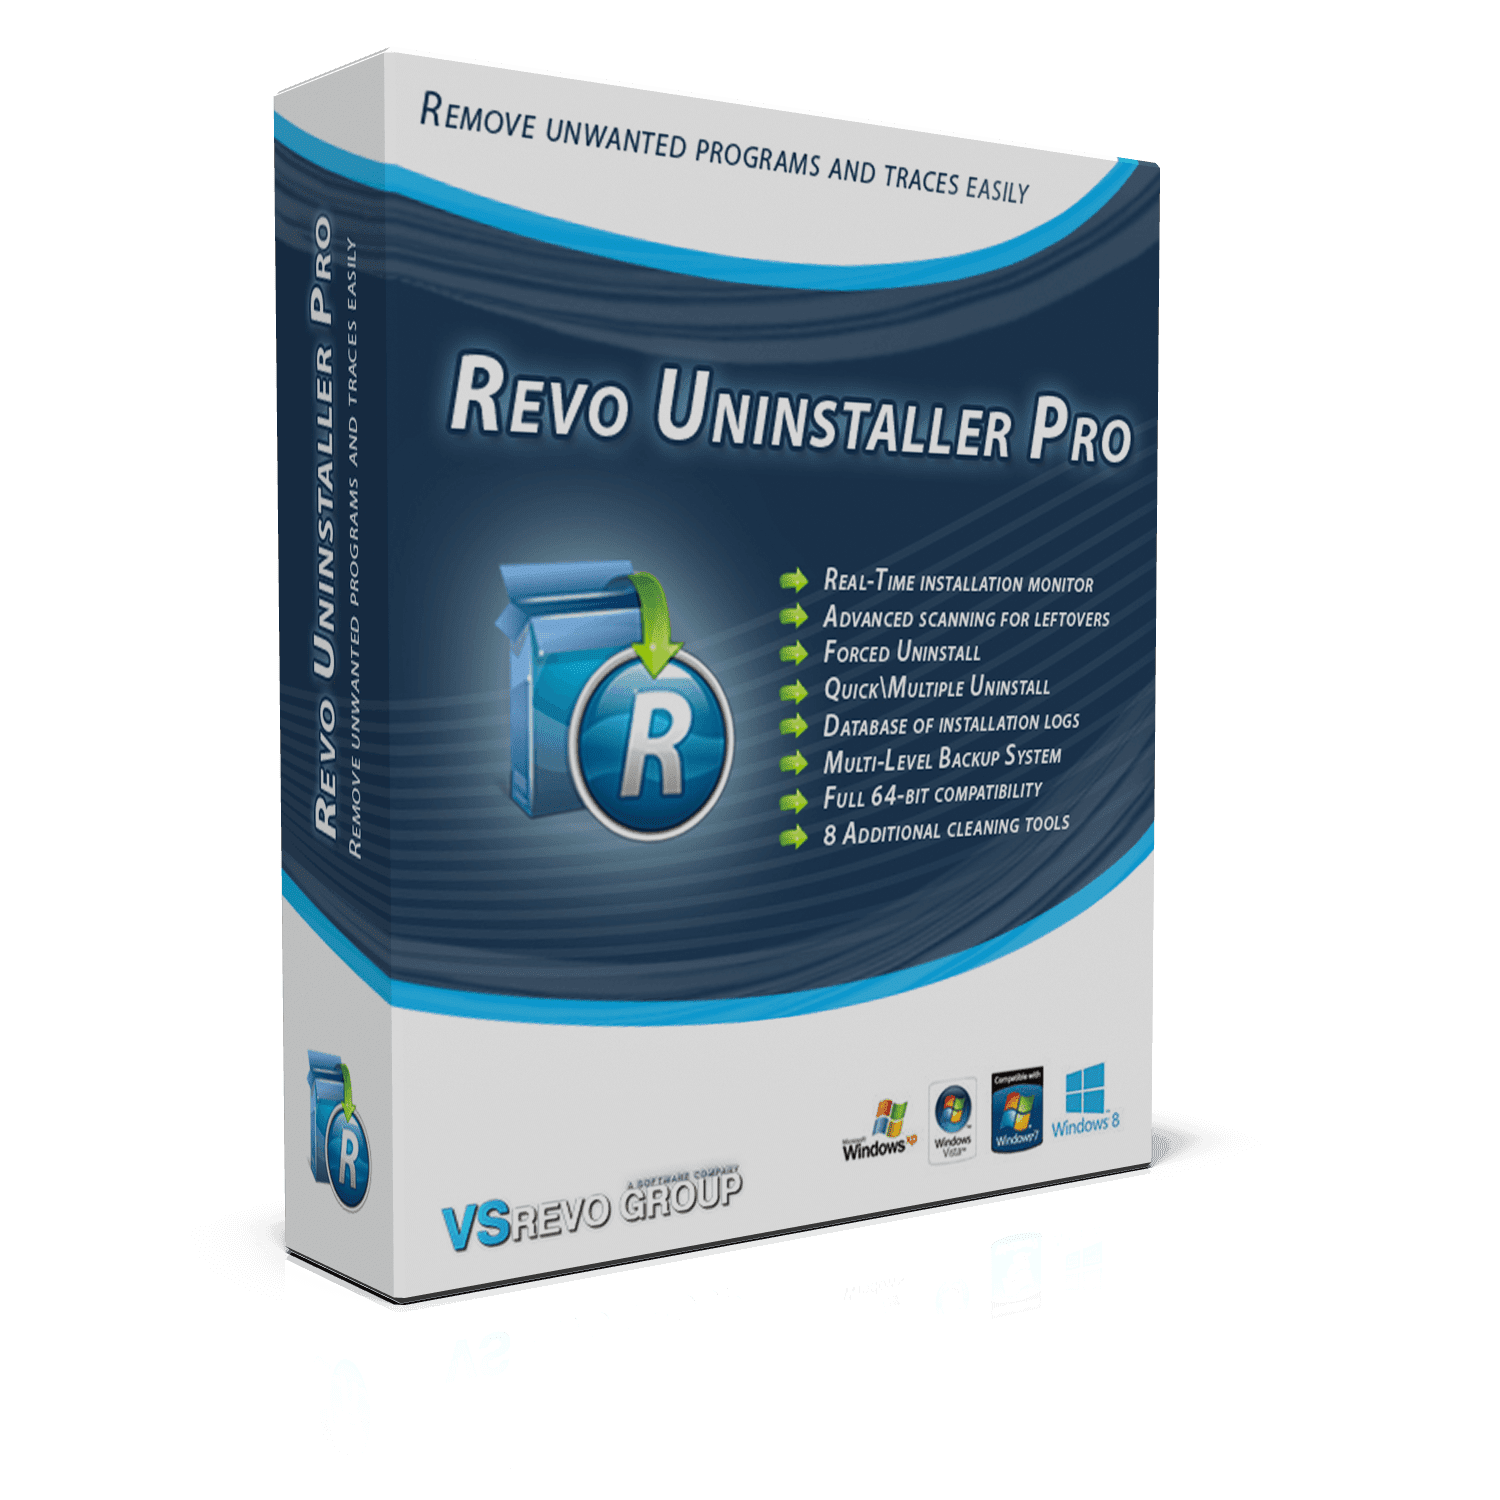 Revo Uninstaller Pro 4.0.0 With Crack, & License key Download